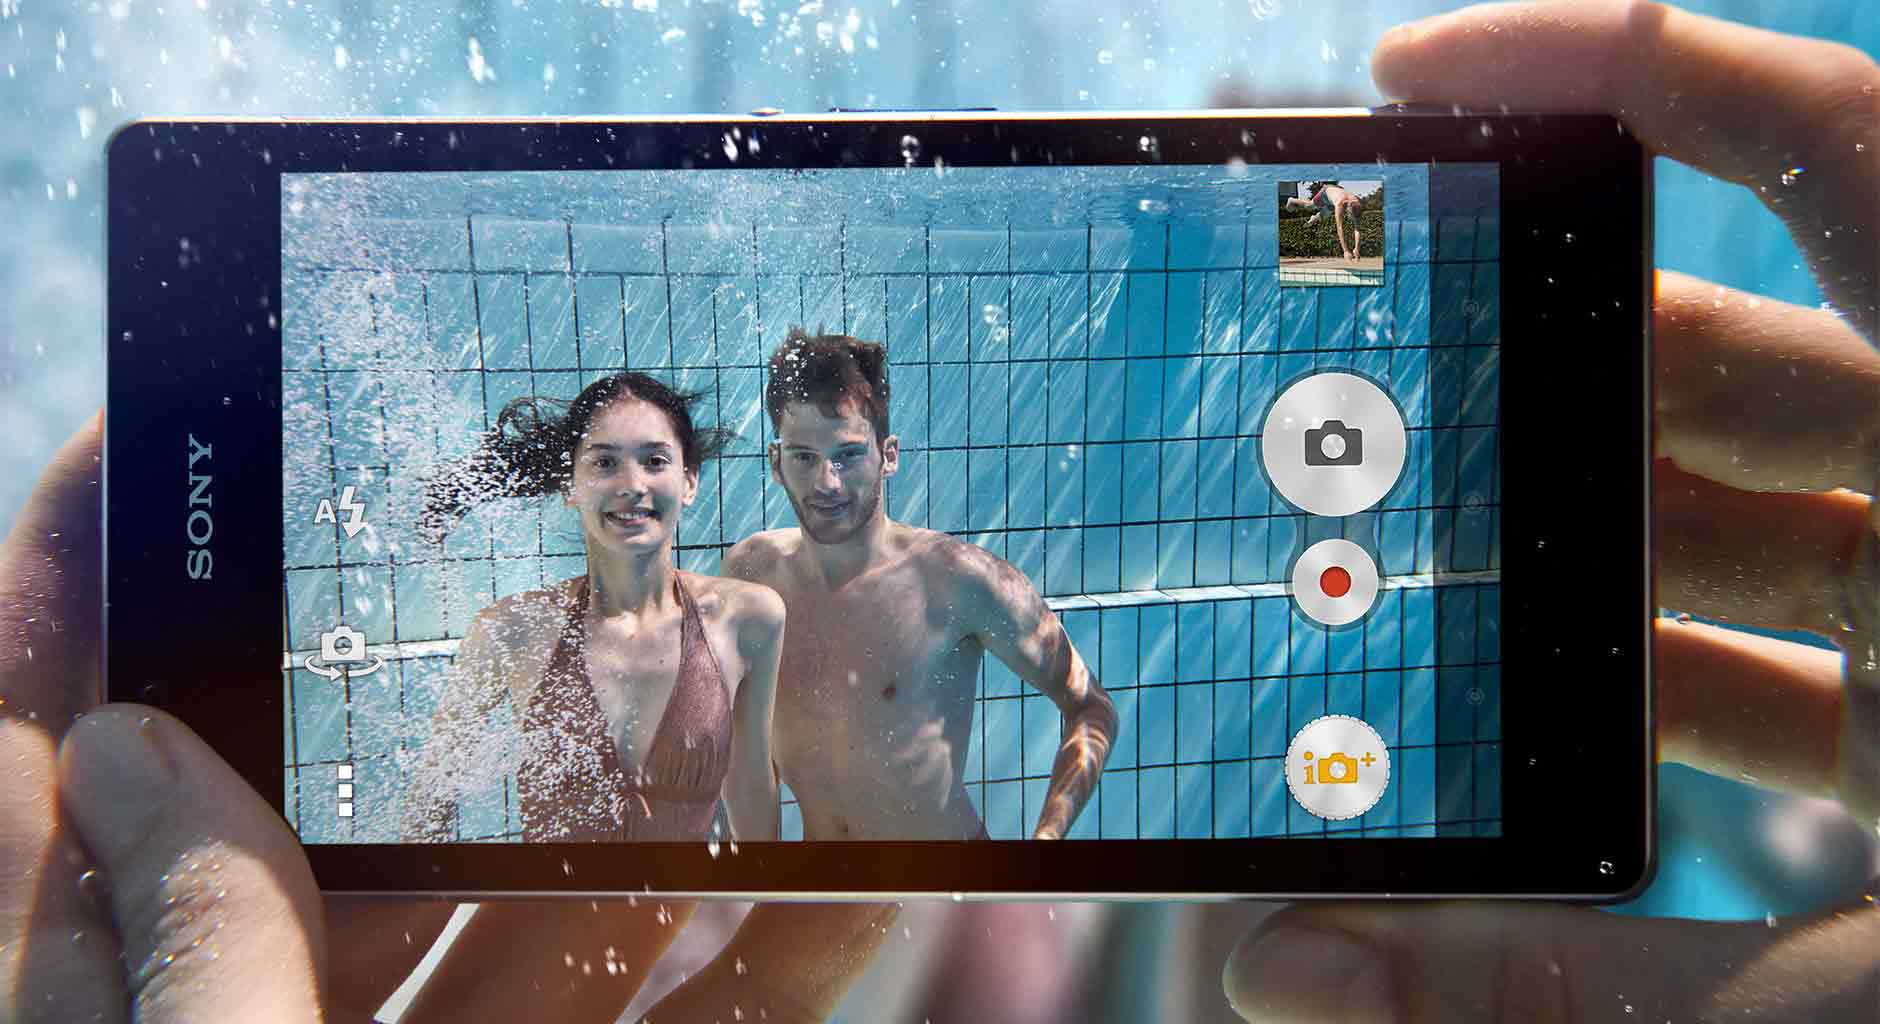 Snap pictures underwater with the waterproof Xperia Z1 Android smartphone.